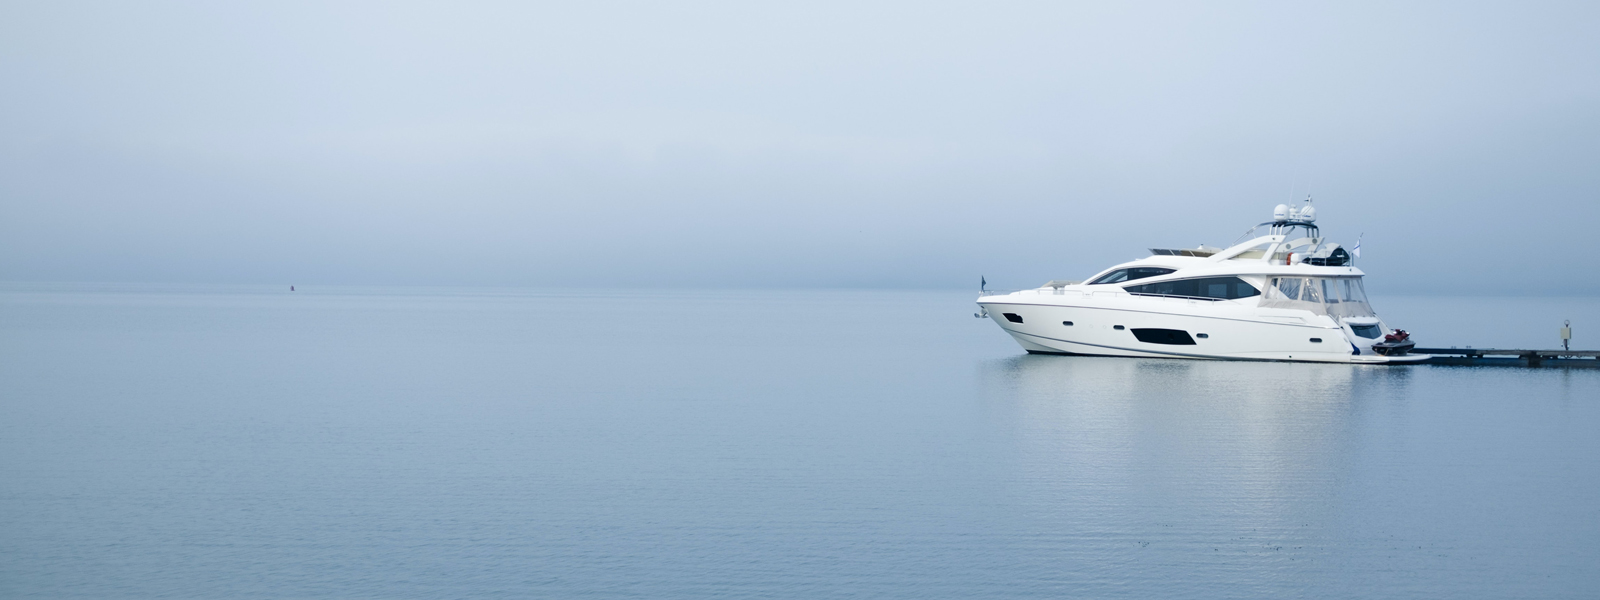 Valuation by Carine Yachts